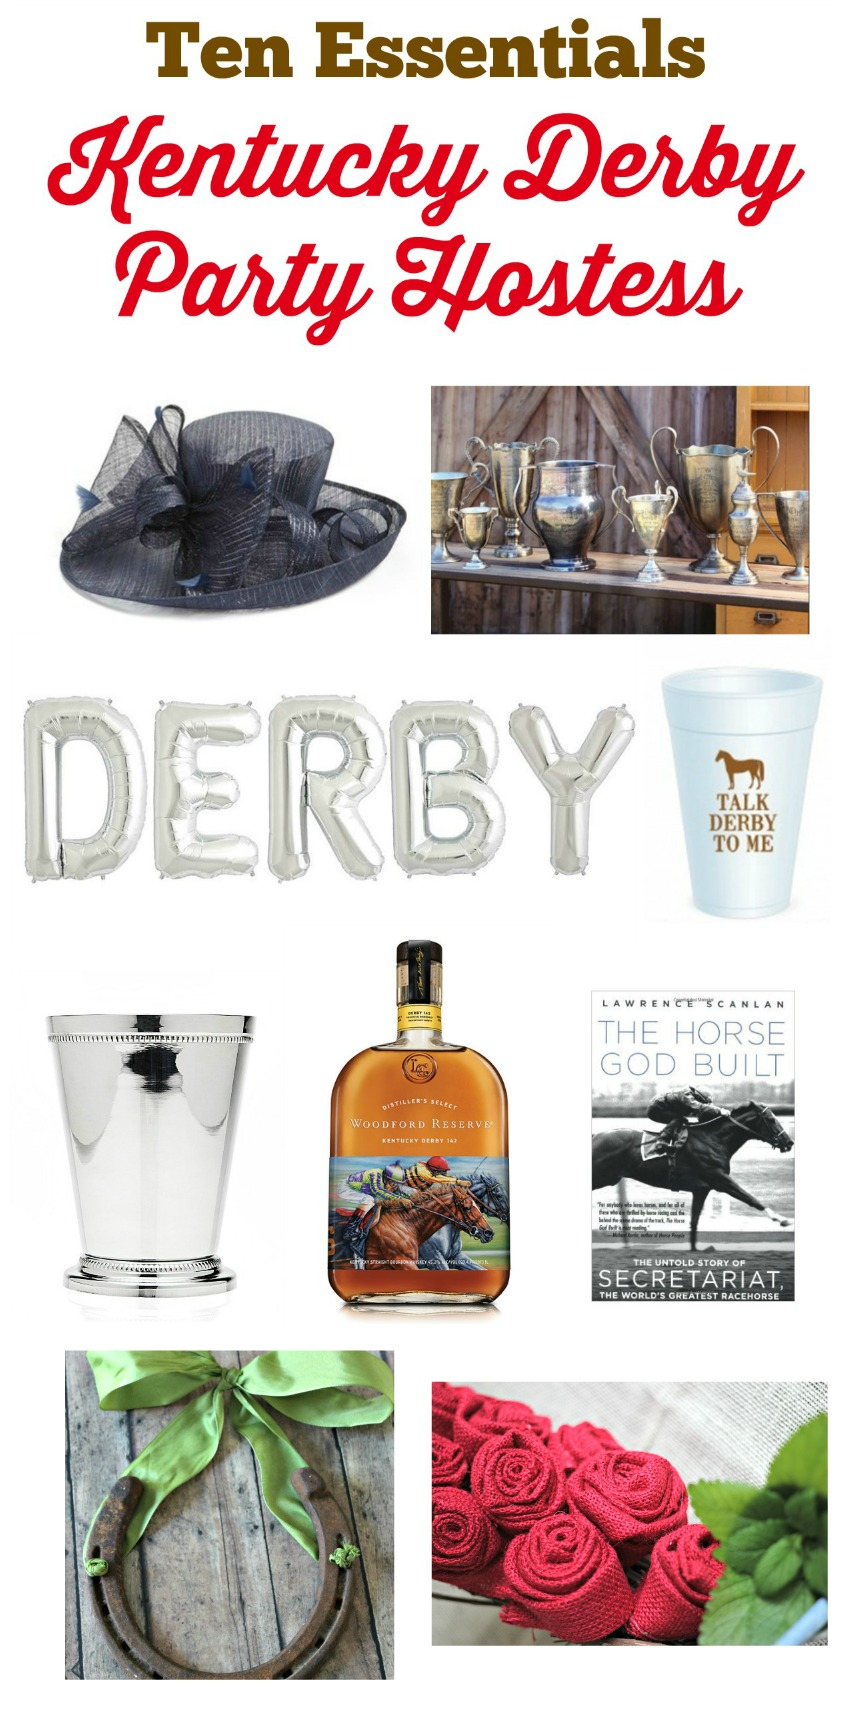 kentucky derby party goods